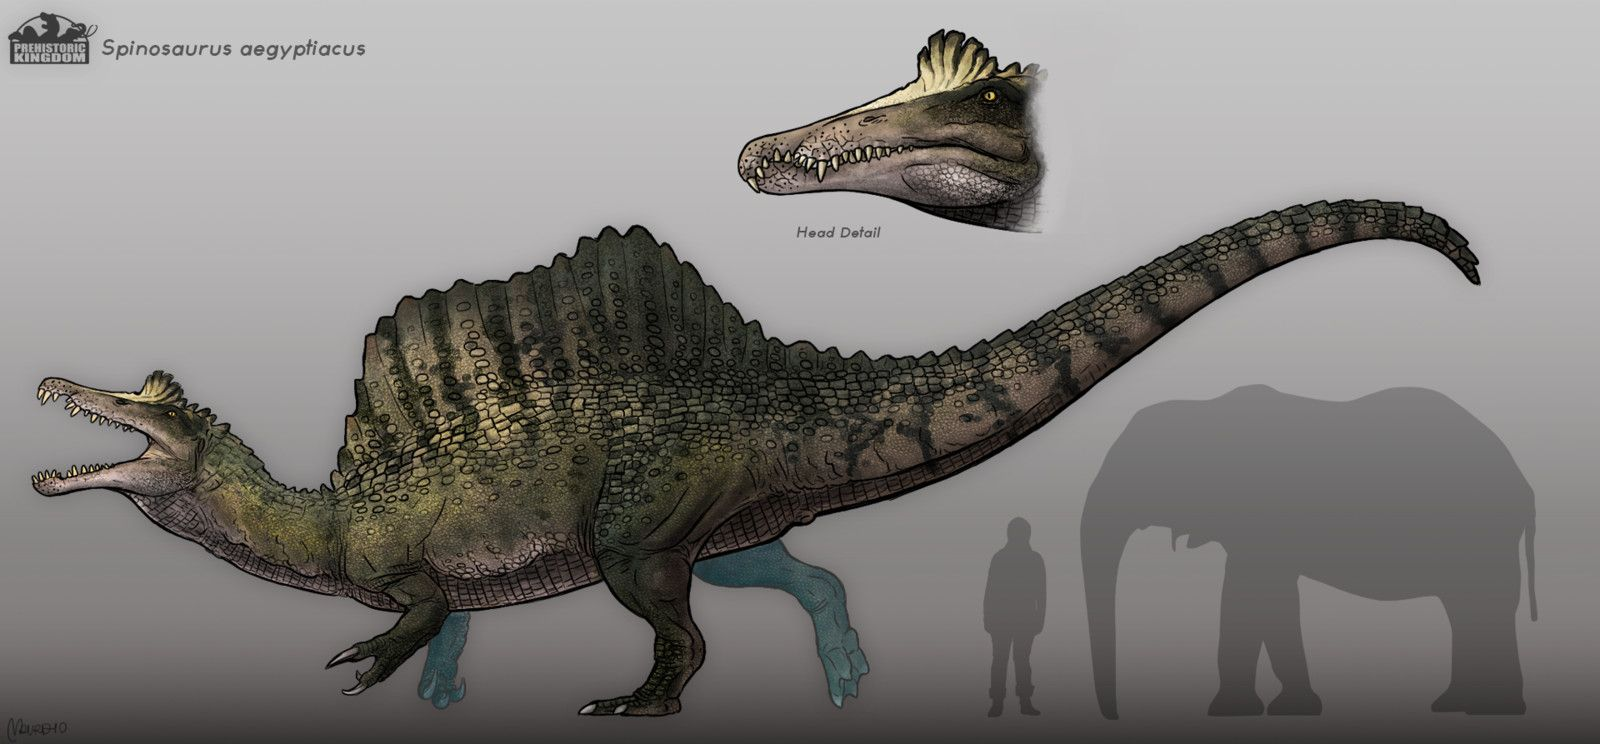 Spinosaurus Concept Design Maurizio Morosan On Artstation At Https Www Artstation Com Artwork Qznq9x Spinosaurus Aegyptiacus Spinosaurus Prehistoric Animals